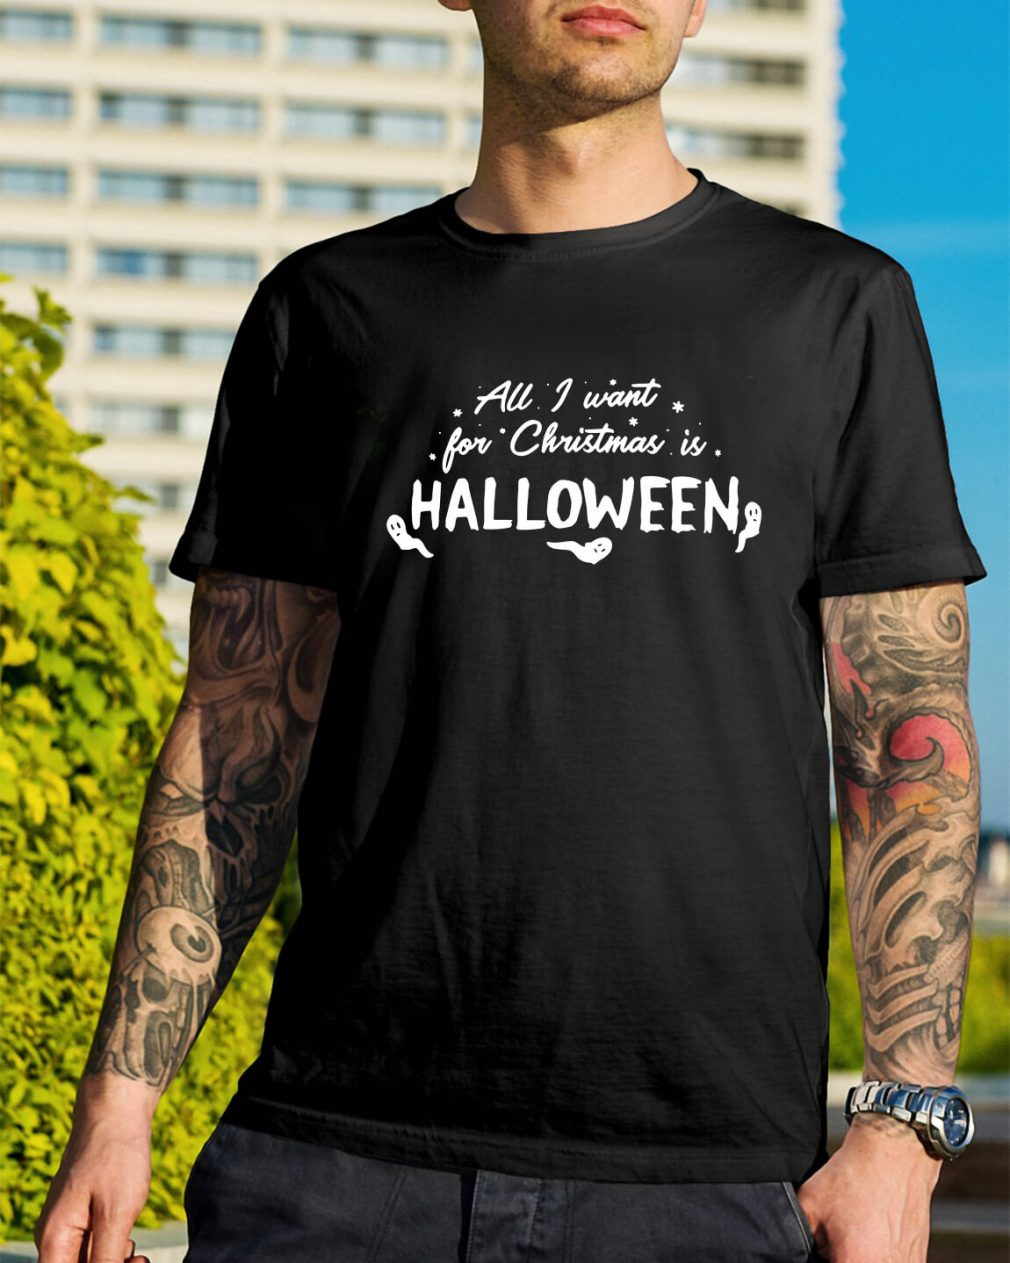 All I want for Christmas is Halloween Guys Shirt